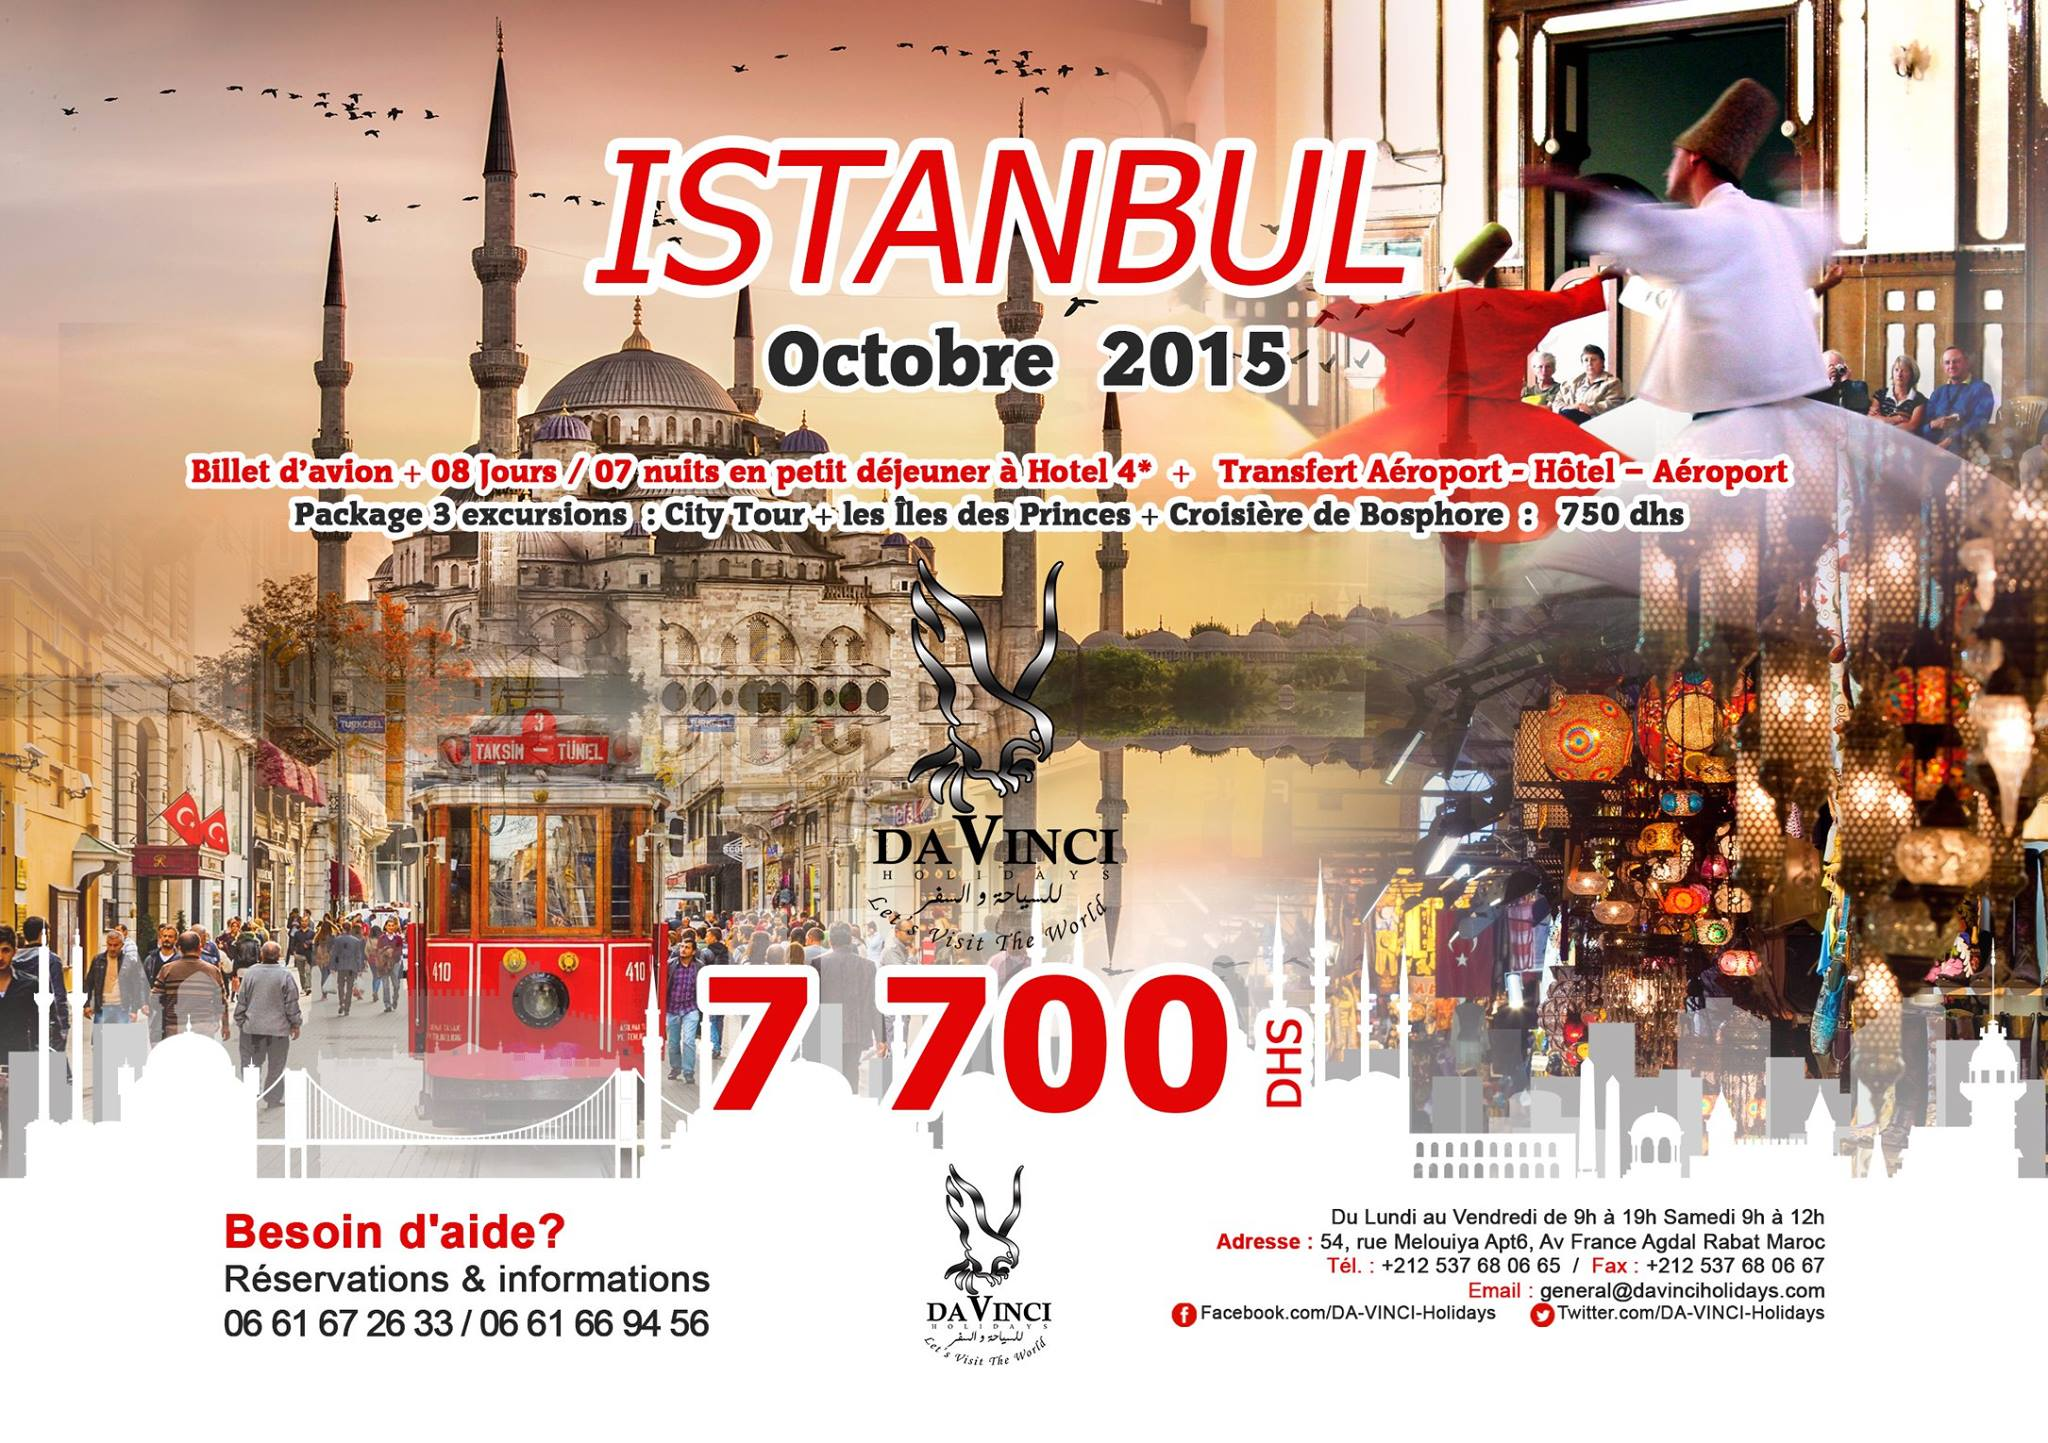 voyage maroc istanbul pas cher